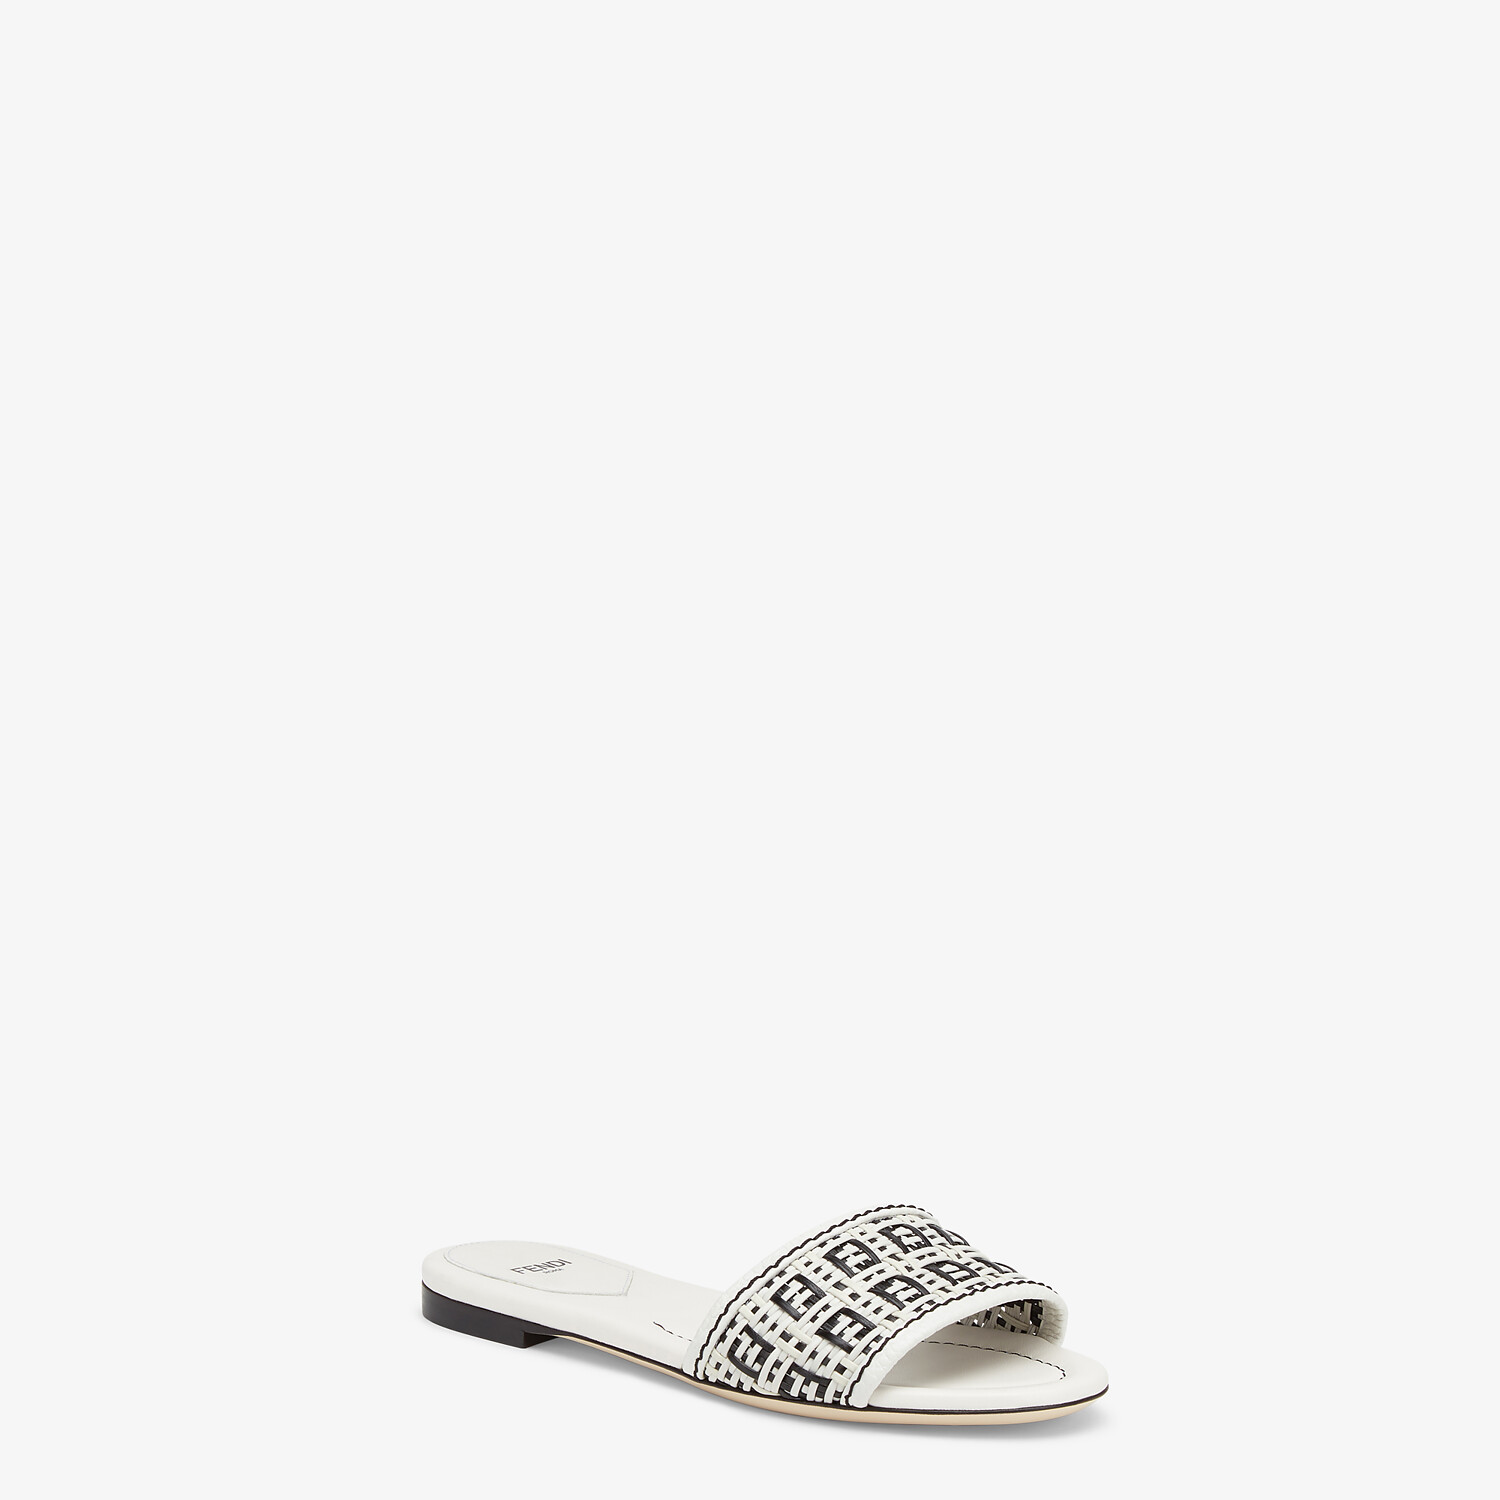 FENDI FF INTERLACE SLIDES - White leather slides - view 2 detail